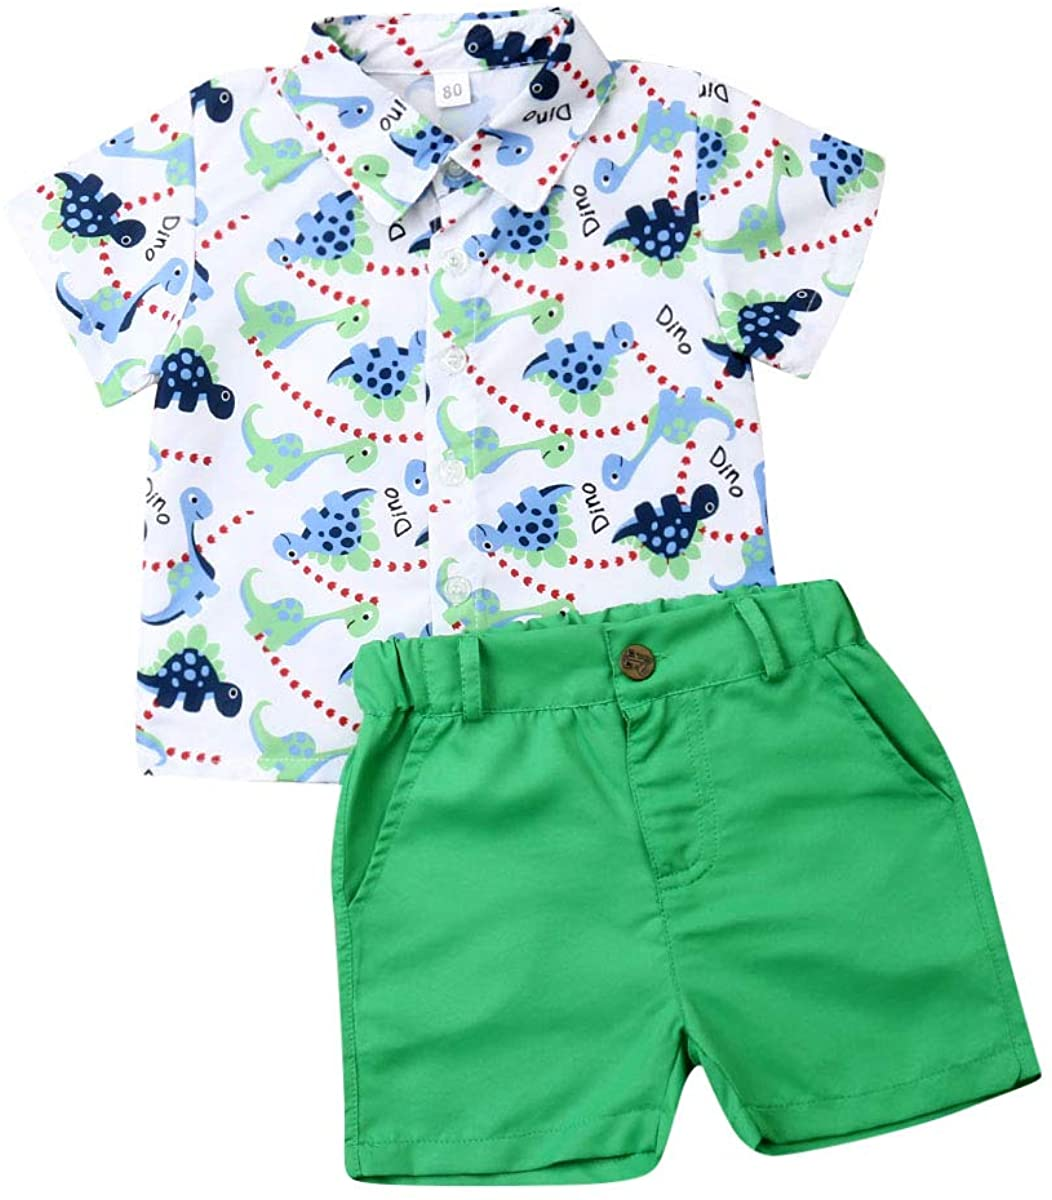 Toddler Baby Boy Summer Clothes Cartoon Dinosaur Print Short Sleeves Button Down Shirt Top+Solid Green Shorts 2PCS Outfit Set